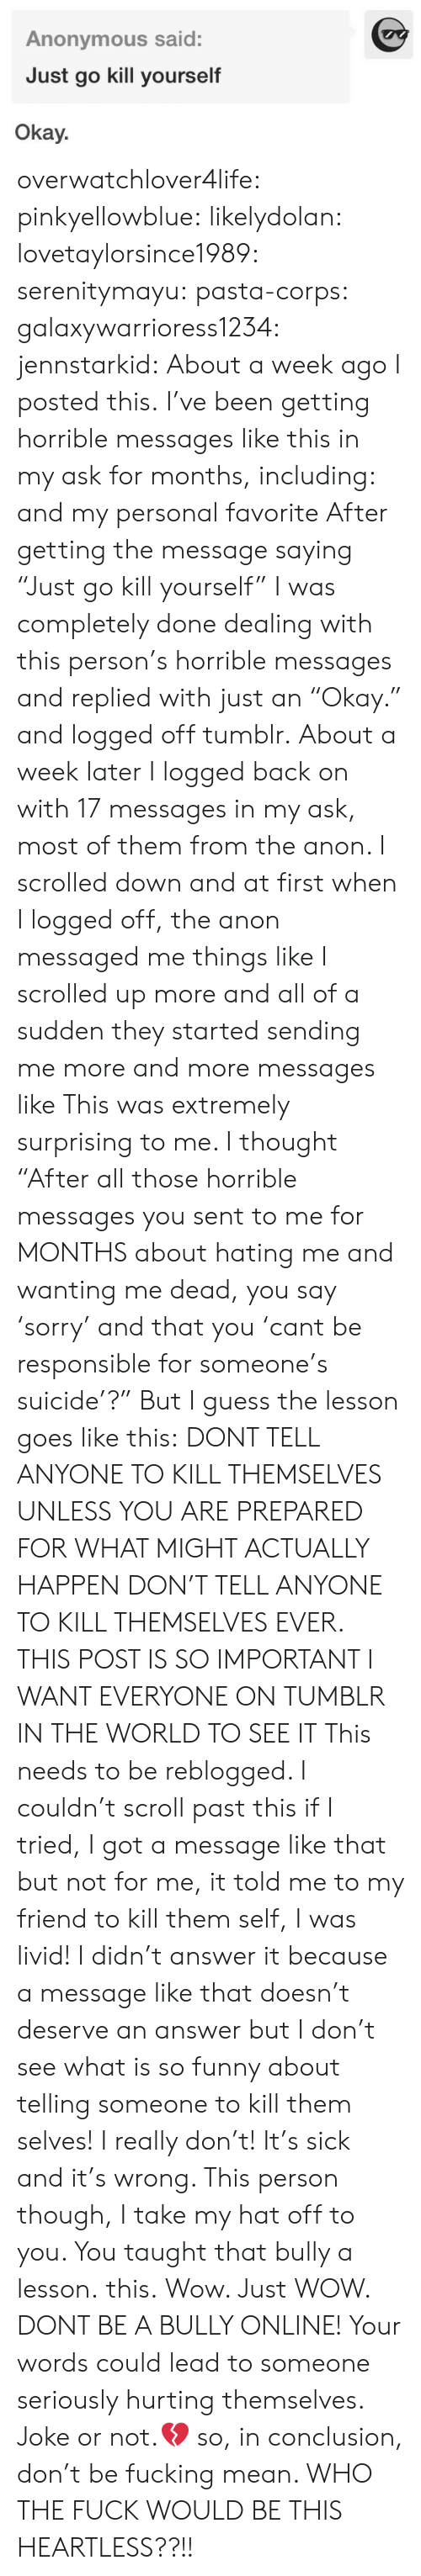 """anon: Anonymous said:  Just go kill yourself  Okay. overwatchlover4life:  pinkyellowblue:  likelydolan:  lovetaylorsince1989:  serenitymayu:  pasta-corps:  galaxywarrioress1234:  jennstarkid:  About a week ago I posted this. I've been getting horrible messages like this in my ask for months, including:  and my personal favorite After getting the message saying """"Just go kill yourself"""" I was completely done dealing with this person's horrible messages and replied with just an """"Okay."""" and logged off tumblr. About a week later I logged back on with 17 messages in my ask, most of them from the anon. I scrolled down and at first when I logged off, the anon messaged me things like I scrolled up more and all of a sudden they started sending me more and more messages like This was extremely surprising to me. I thought """"After all those horrible messages you sent to me for MONTHS about hating me and wanting me dead, you say 'sorry' and that you 'cant be responsible for someone's suicide'?"""" But I guess the lesson goes like this: DONT TELL ANYONE TO KILL THEMSELVES UNLESS YOU ARE PREPARED FOR WHAT MIGHT ACTUALLY HAPPEN   DON'T TELL ANYONE TO KILL THEMSELVES EVER.  THIS POST IS SO IMPORTANT I WANT EVERYONE ON TUMBLR IN THE WORLD TO SEE IT  This needs to be reblogged. I couldn't scroll past this if I tried, I got a message like that but not for me, it told me to my friend to kill them self, I was livid! I didn't answer it because a message like that doesn't deserve an answer but I don't see what is so funny about telling someone to kill them selves! I really don't! It's sick and it's wrong. This person though, I take my hat off to you. You taught that bully a lesson.  this.   Wow. Just WOW. DONT BE A BULLY ONLINE! Your words could lead to someone seriously hurting themselves. Joke or not.💔  so, in conclusion, don't be fucking mean.   WHO THE FUCK WOULD BE THIS HEARTLESS??!!"""